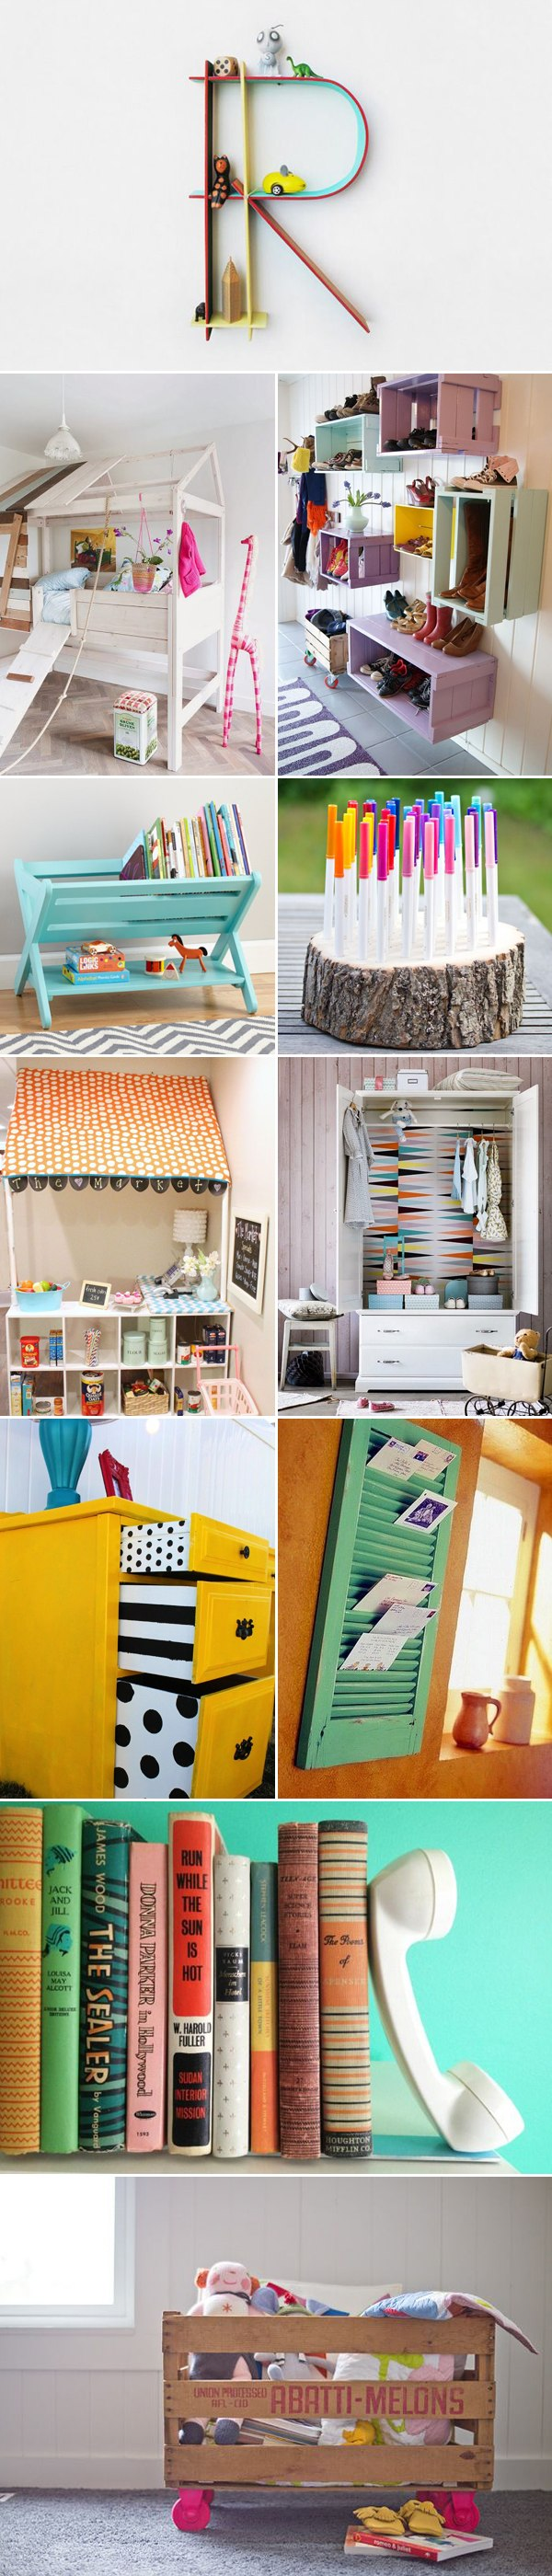 54+ Ideas on How to Creatively Recycle Old Items In Superb DIY Projects homesthetics decor (19)